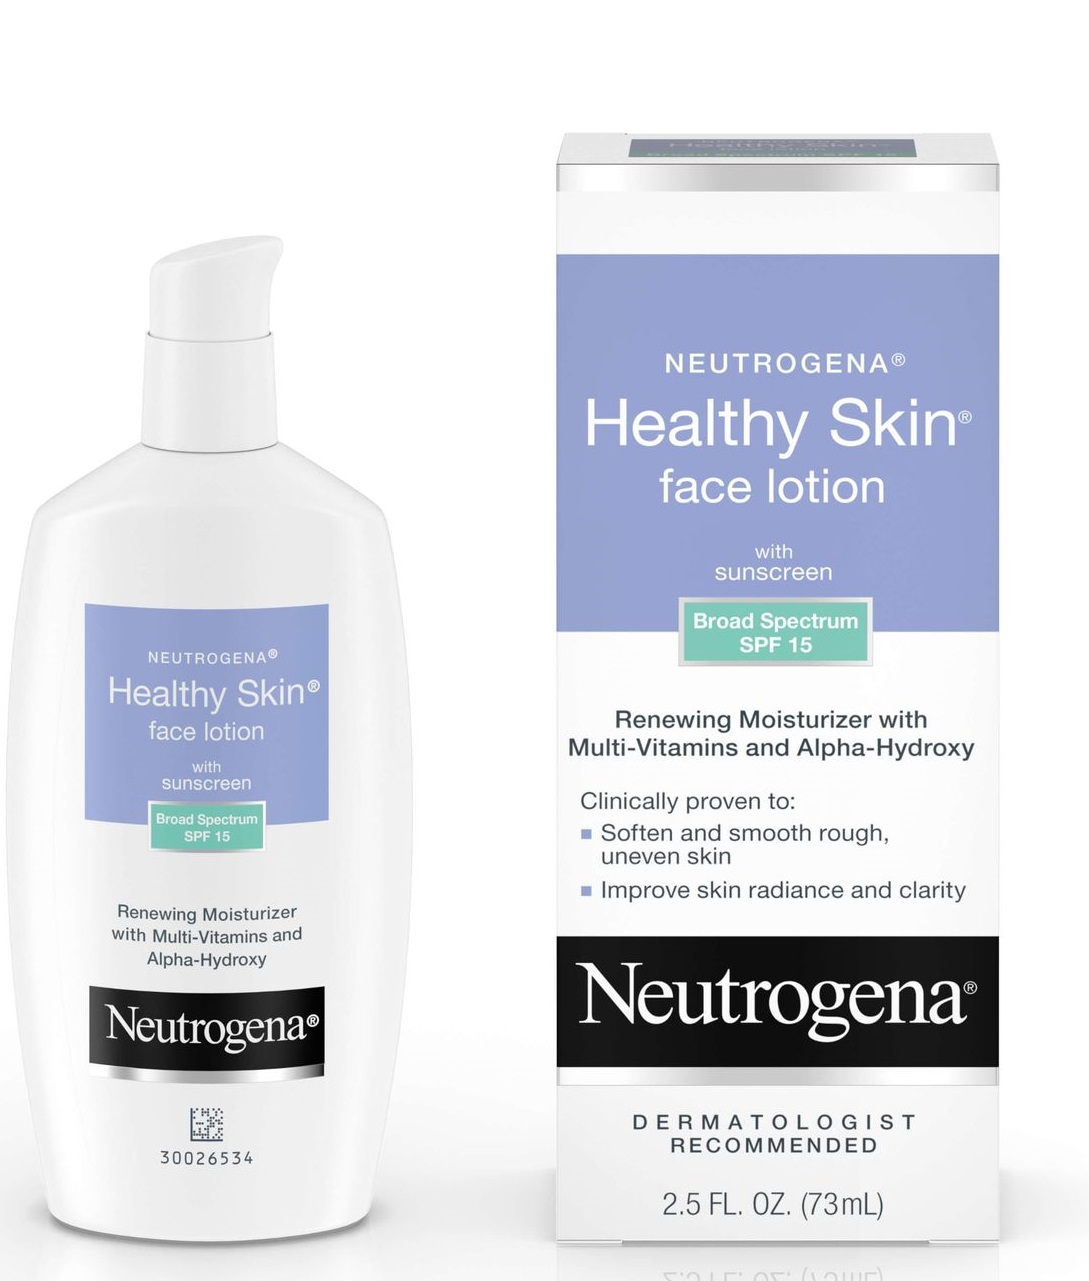 Neutrogena® Healthy Skin Face Lotion with Sunscreen Broad Spectrum SPF 15